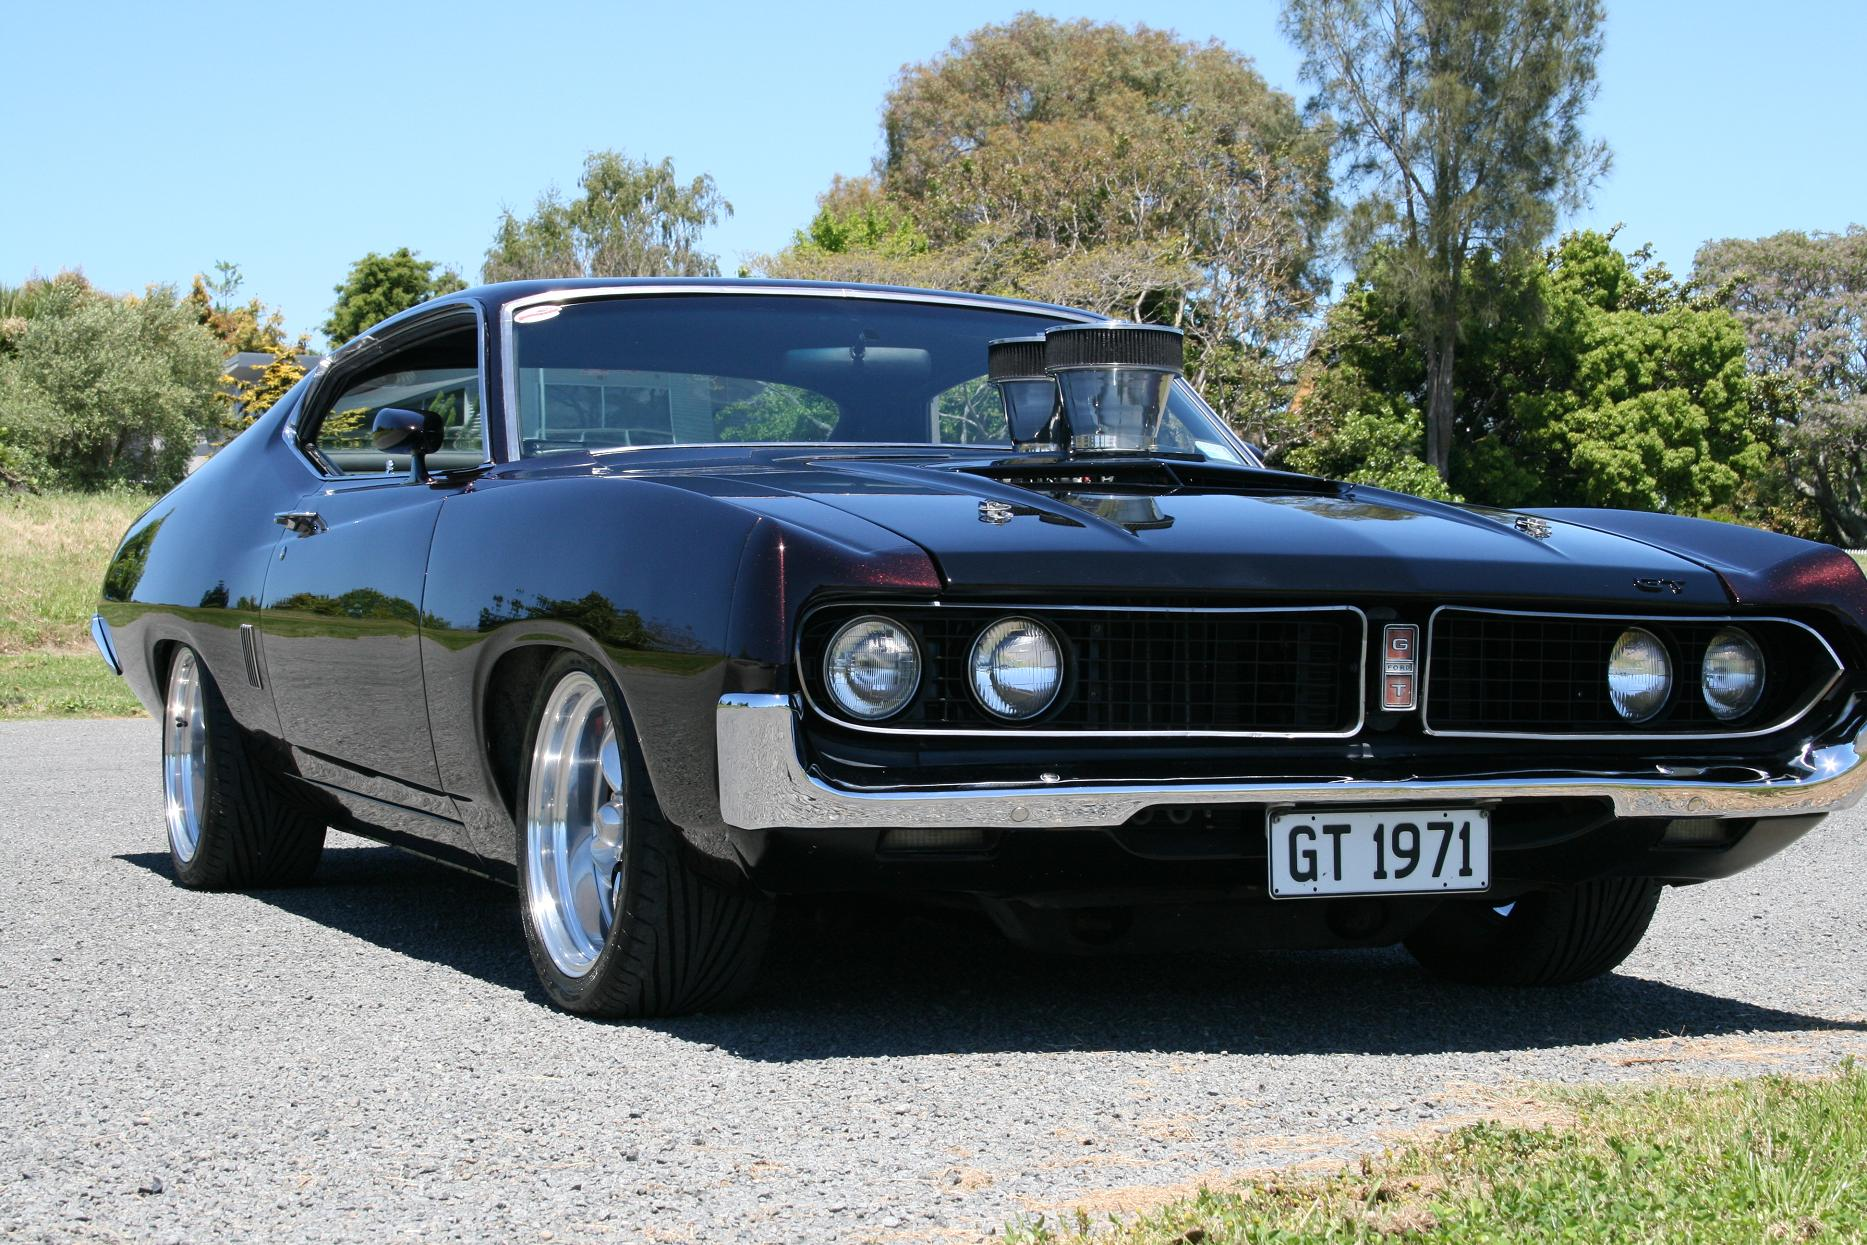 hot rod rods classic muscle 1971 Ford Torino f_JPG wallpaper ...